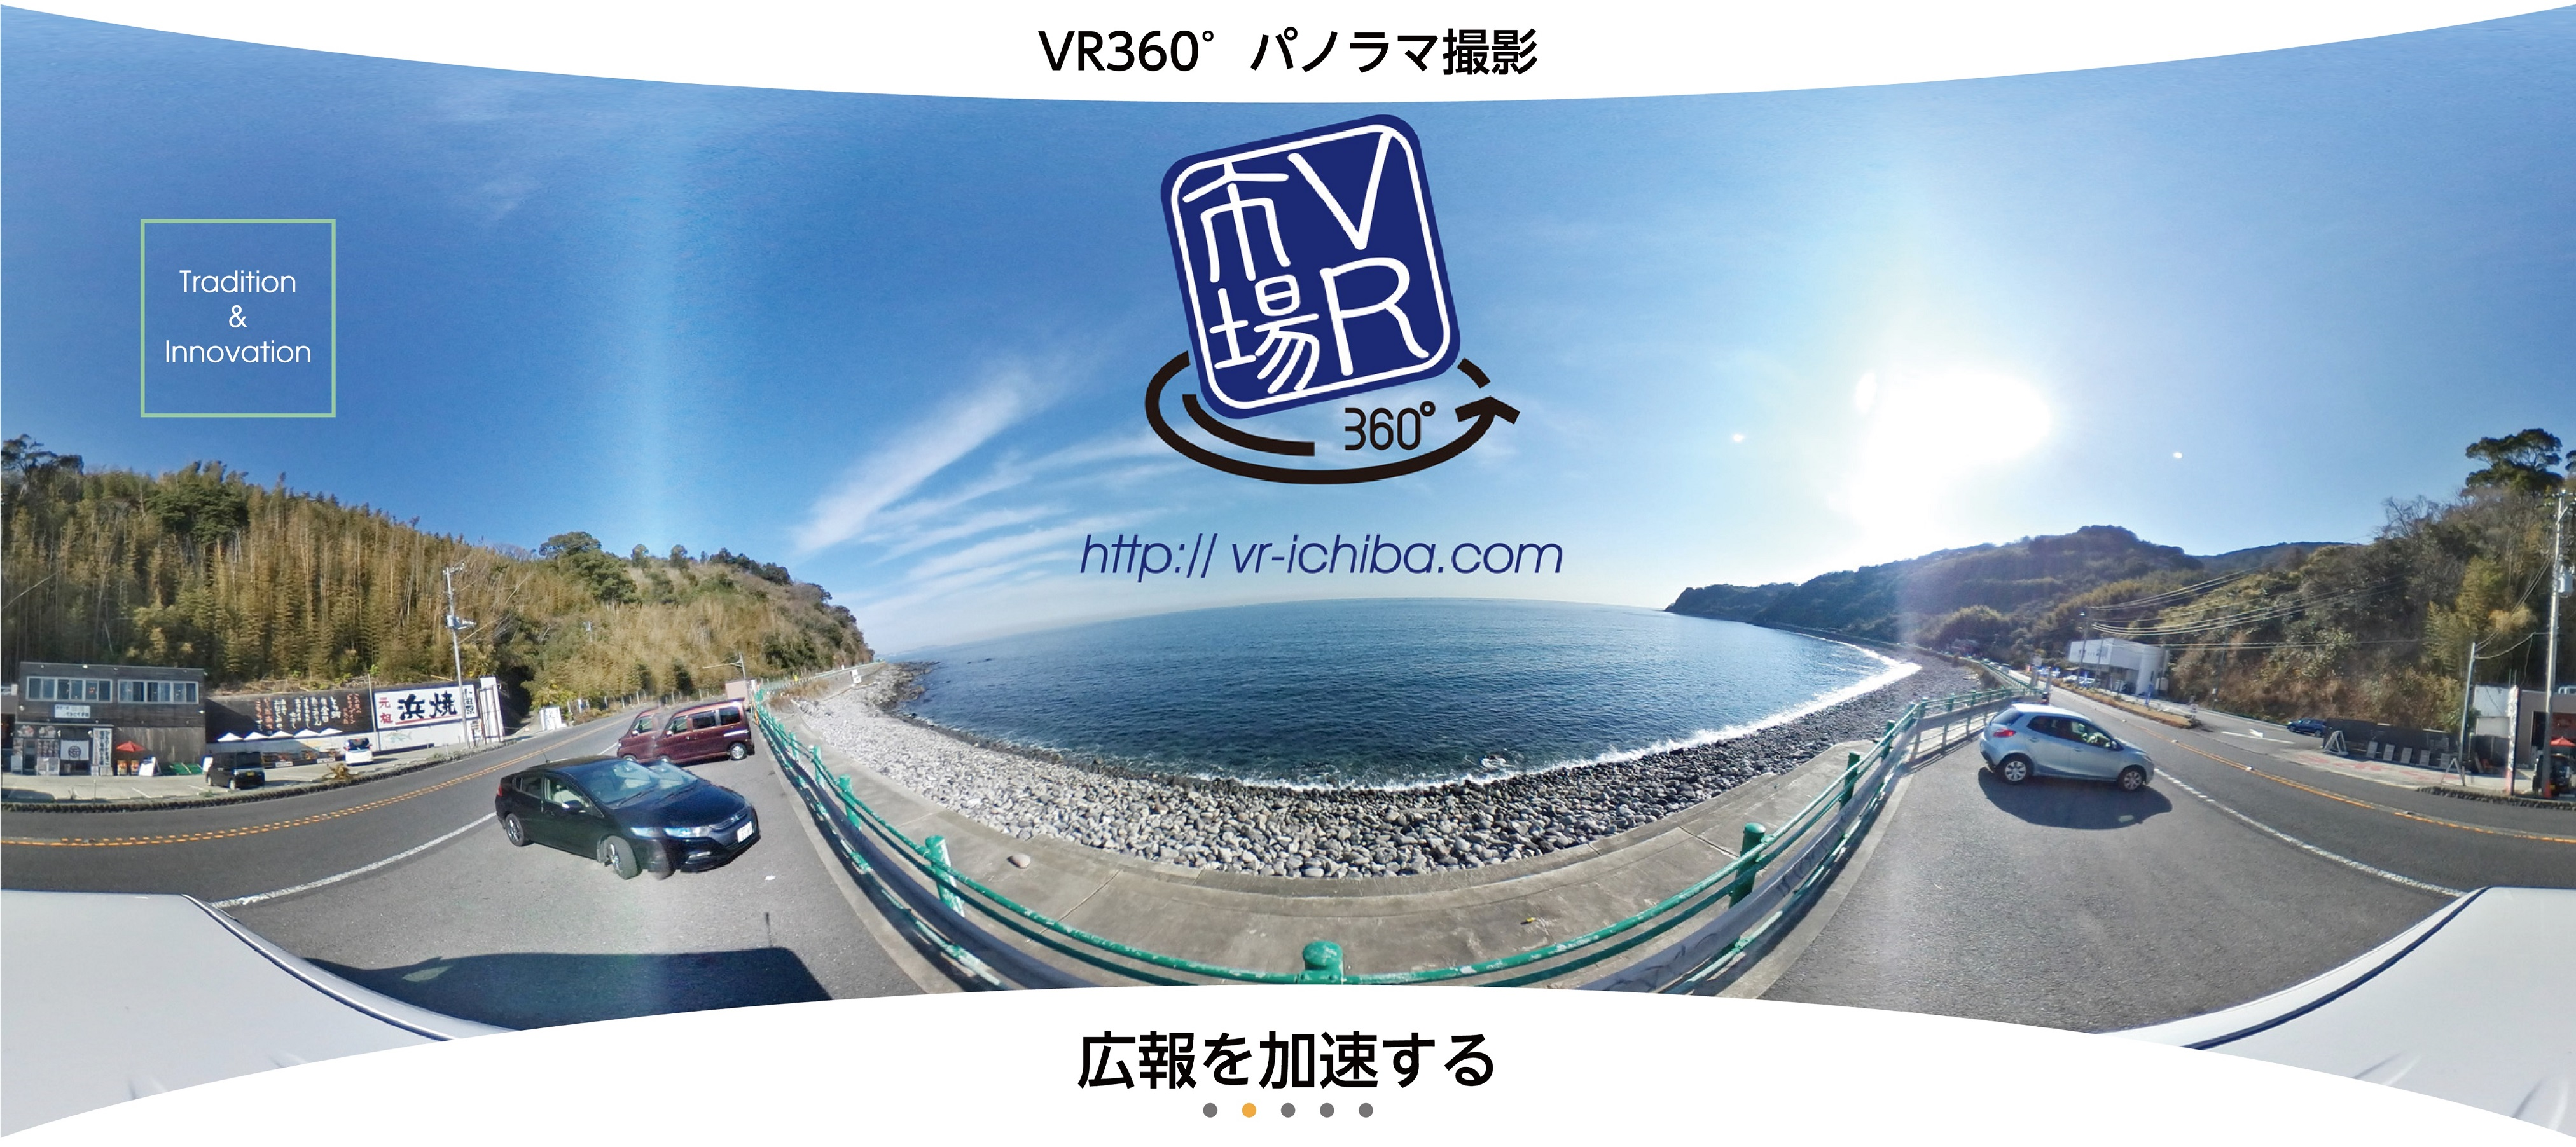 VR360°パノラマ撮影